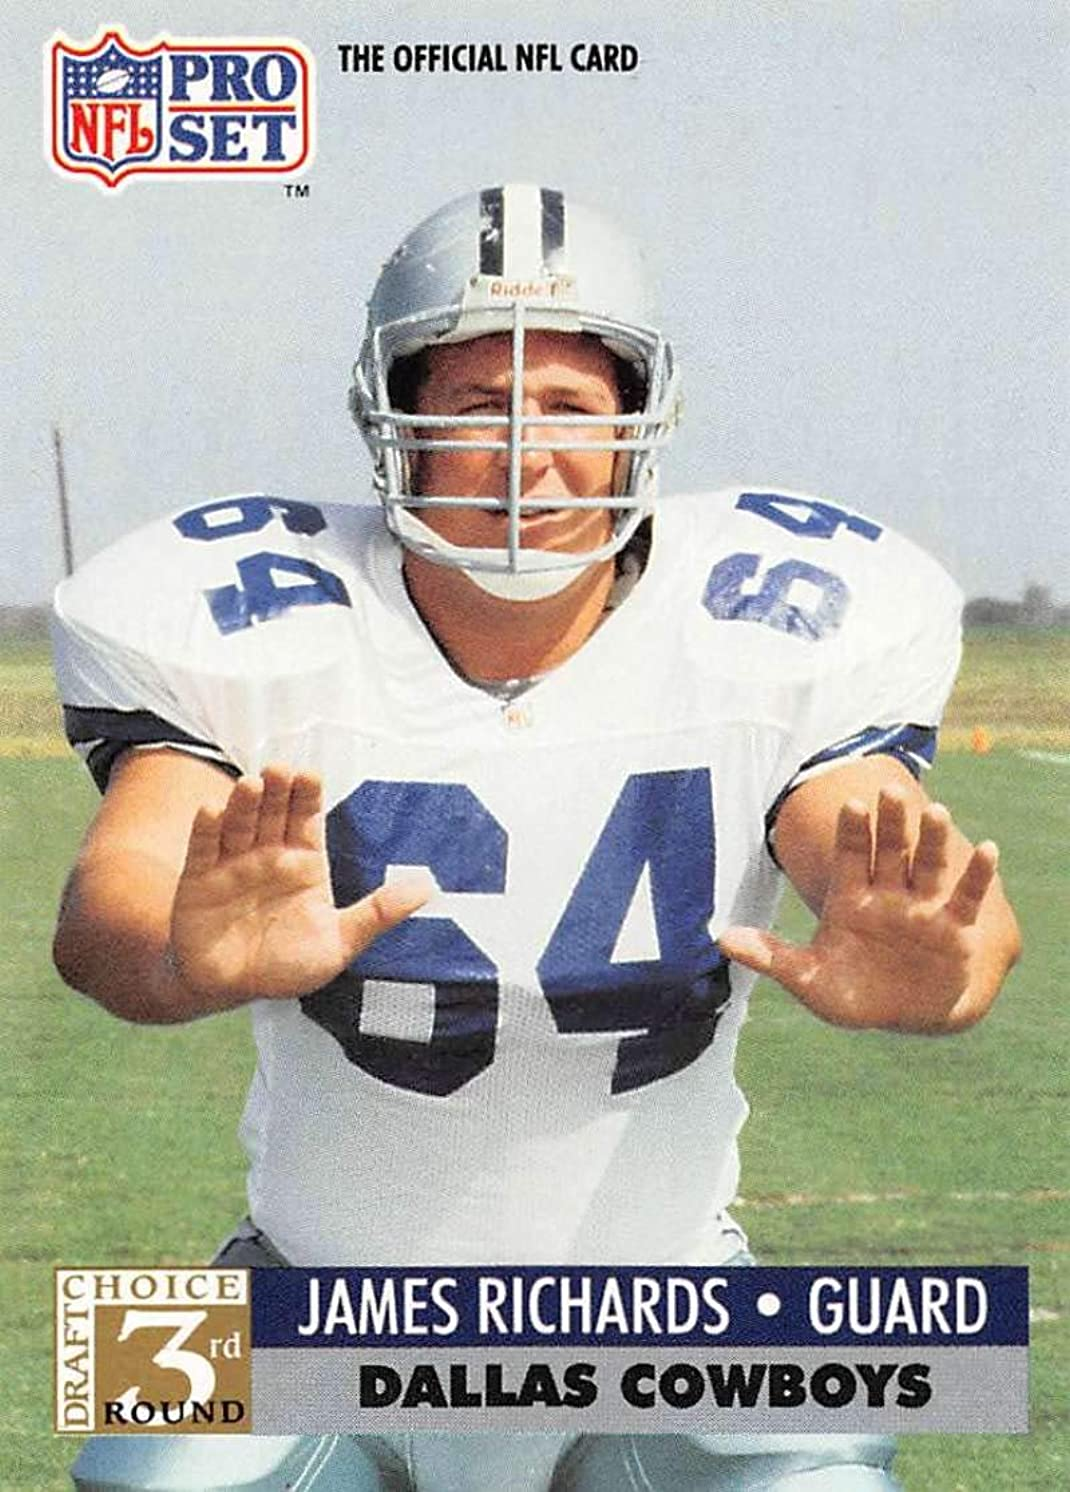 1991 Pro Set Football Card #793 James Richards DC RC Rookie Card Dallas Cowboys Official NFL Trading Card